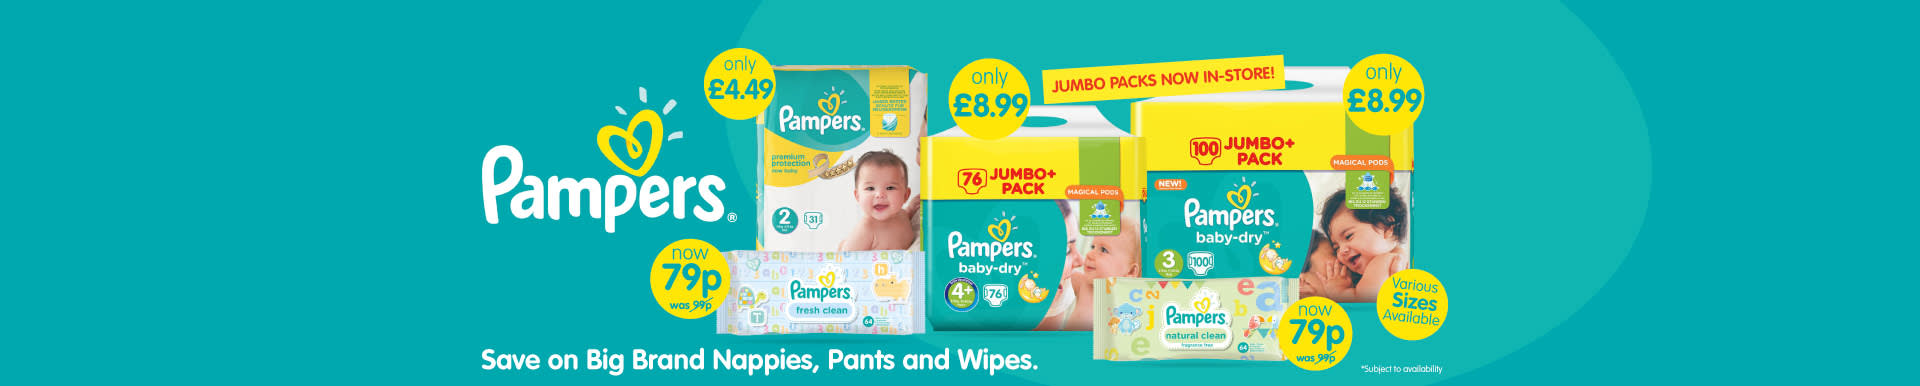 Save on Pampers nappies and wipes at B&M.